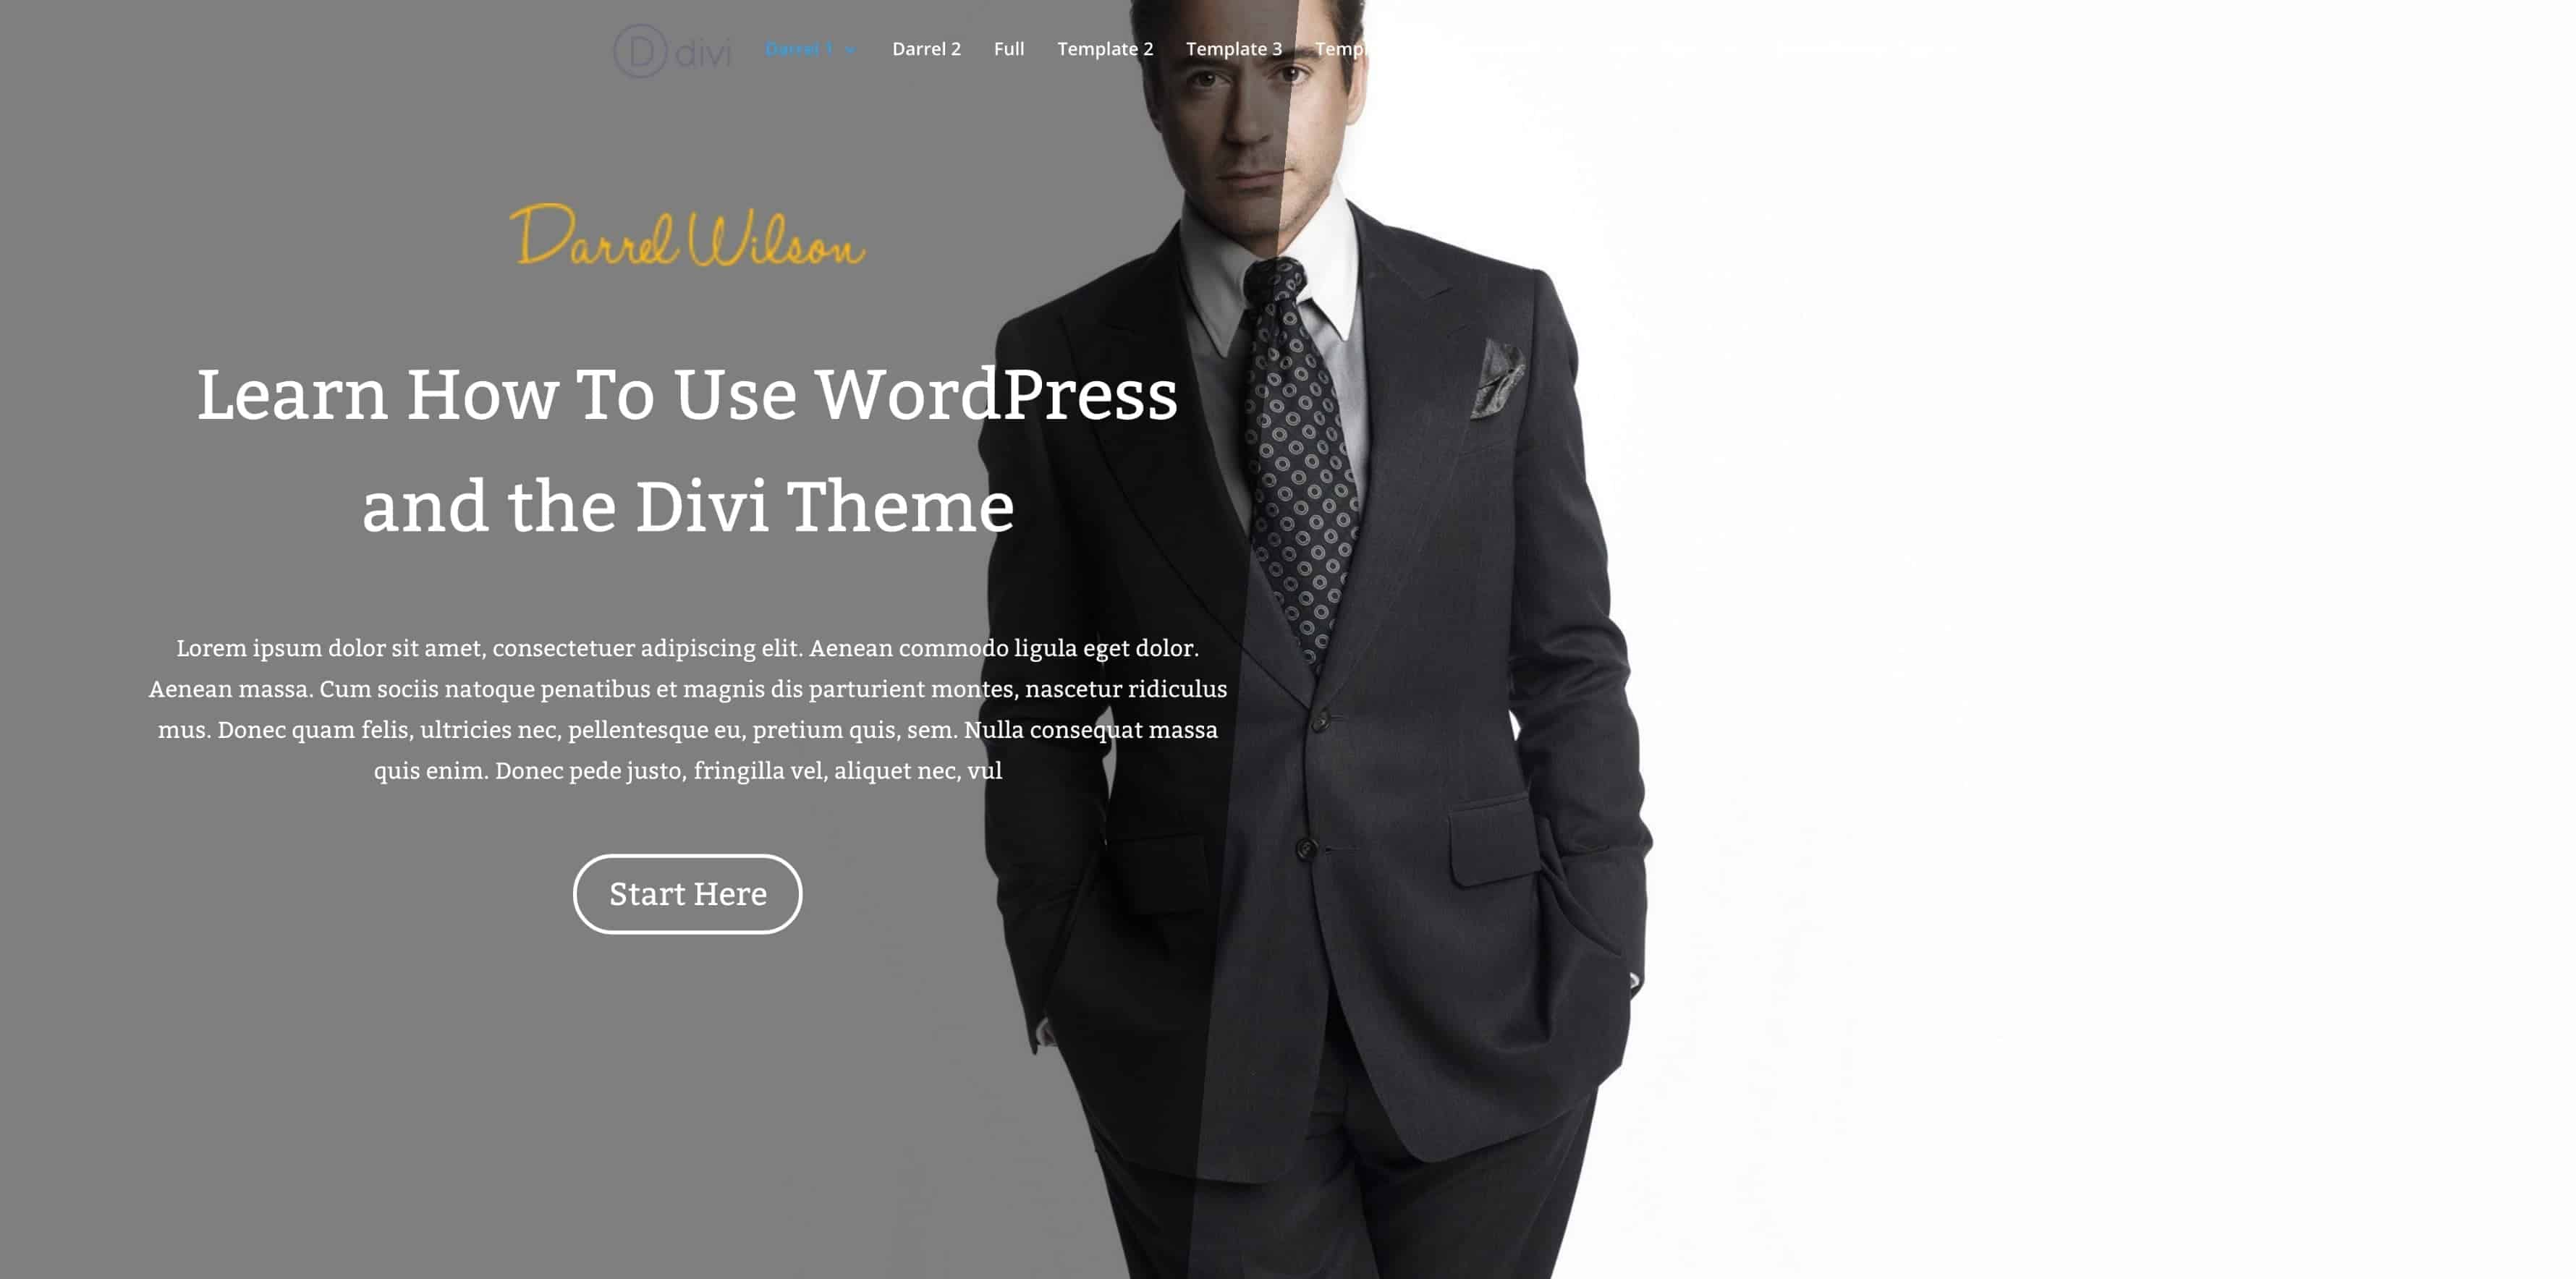 DIVI THEME 3.0 TUTORIAL FOR WORDPRESS